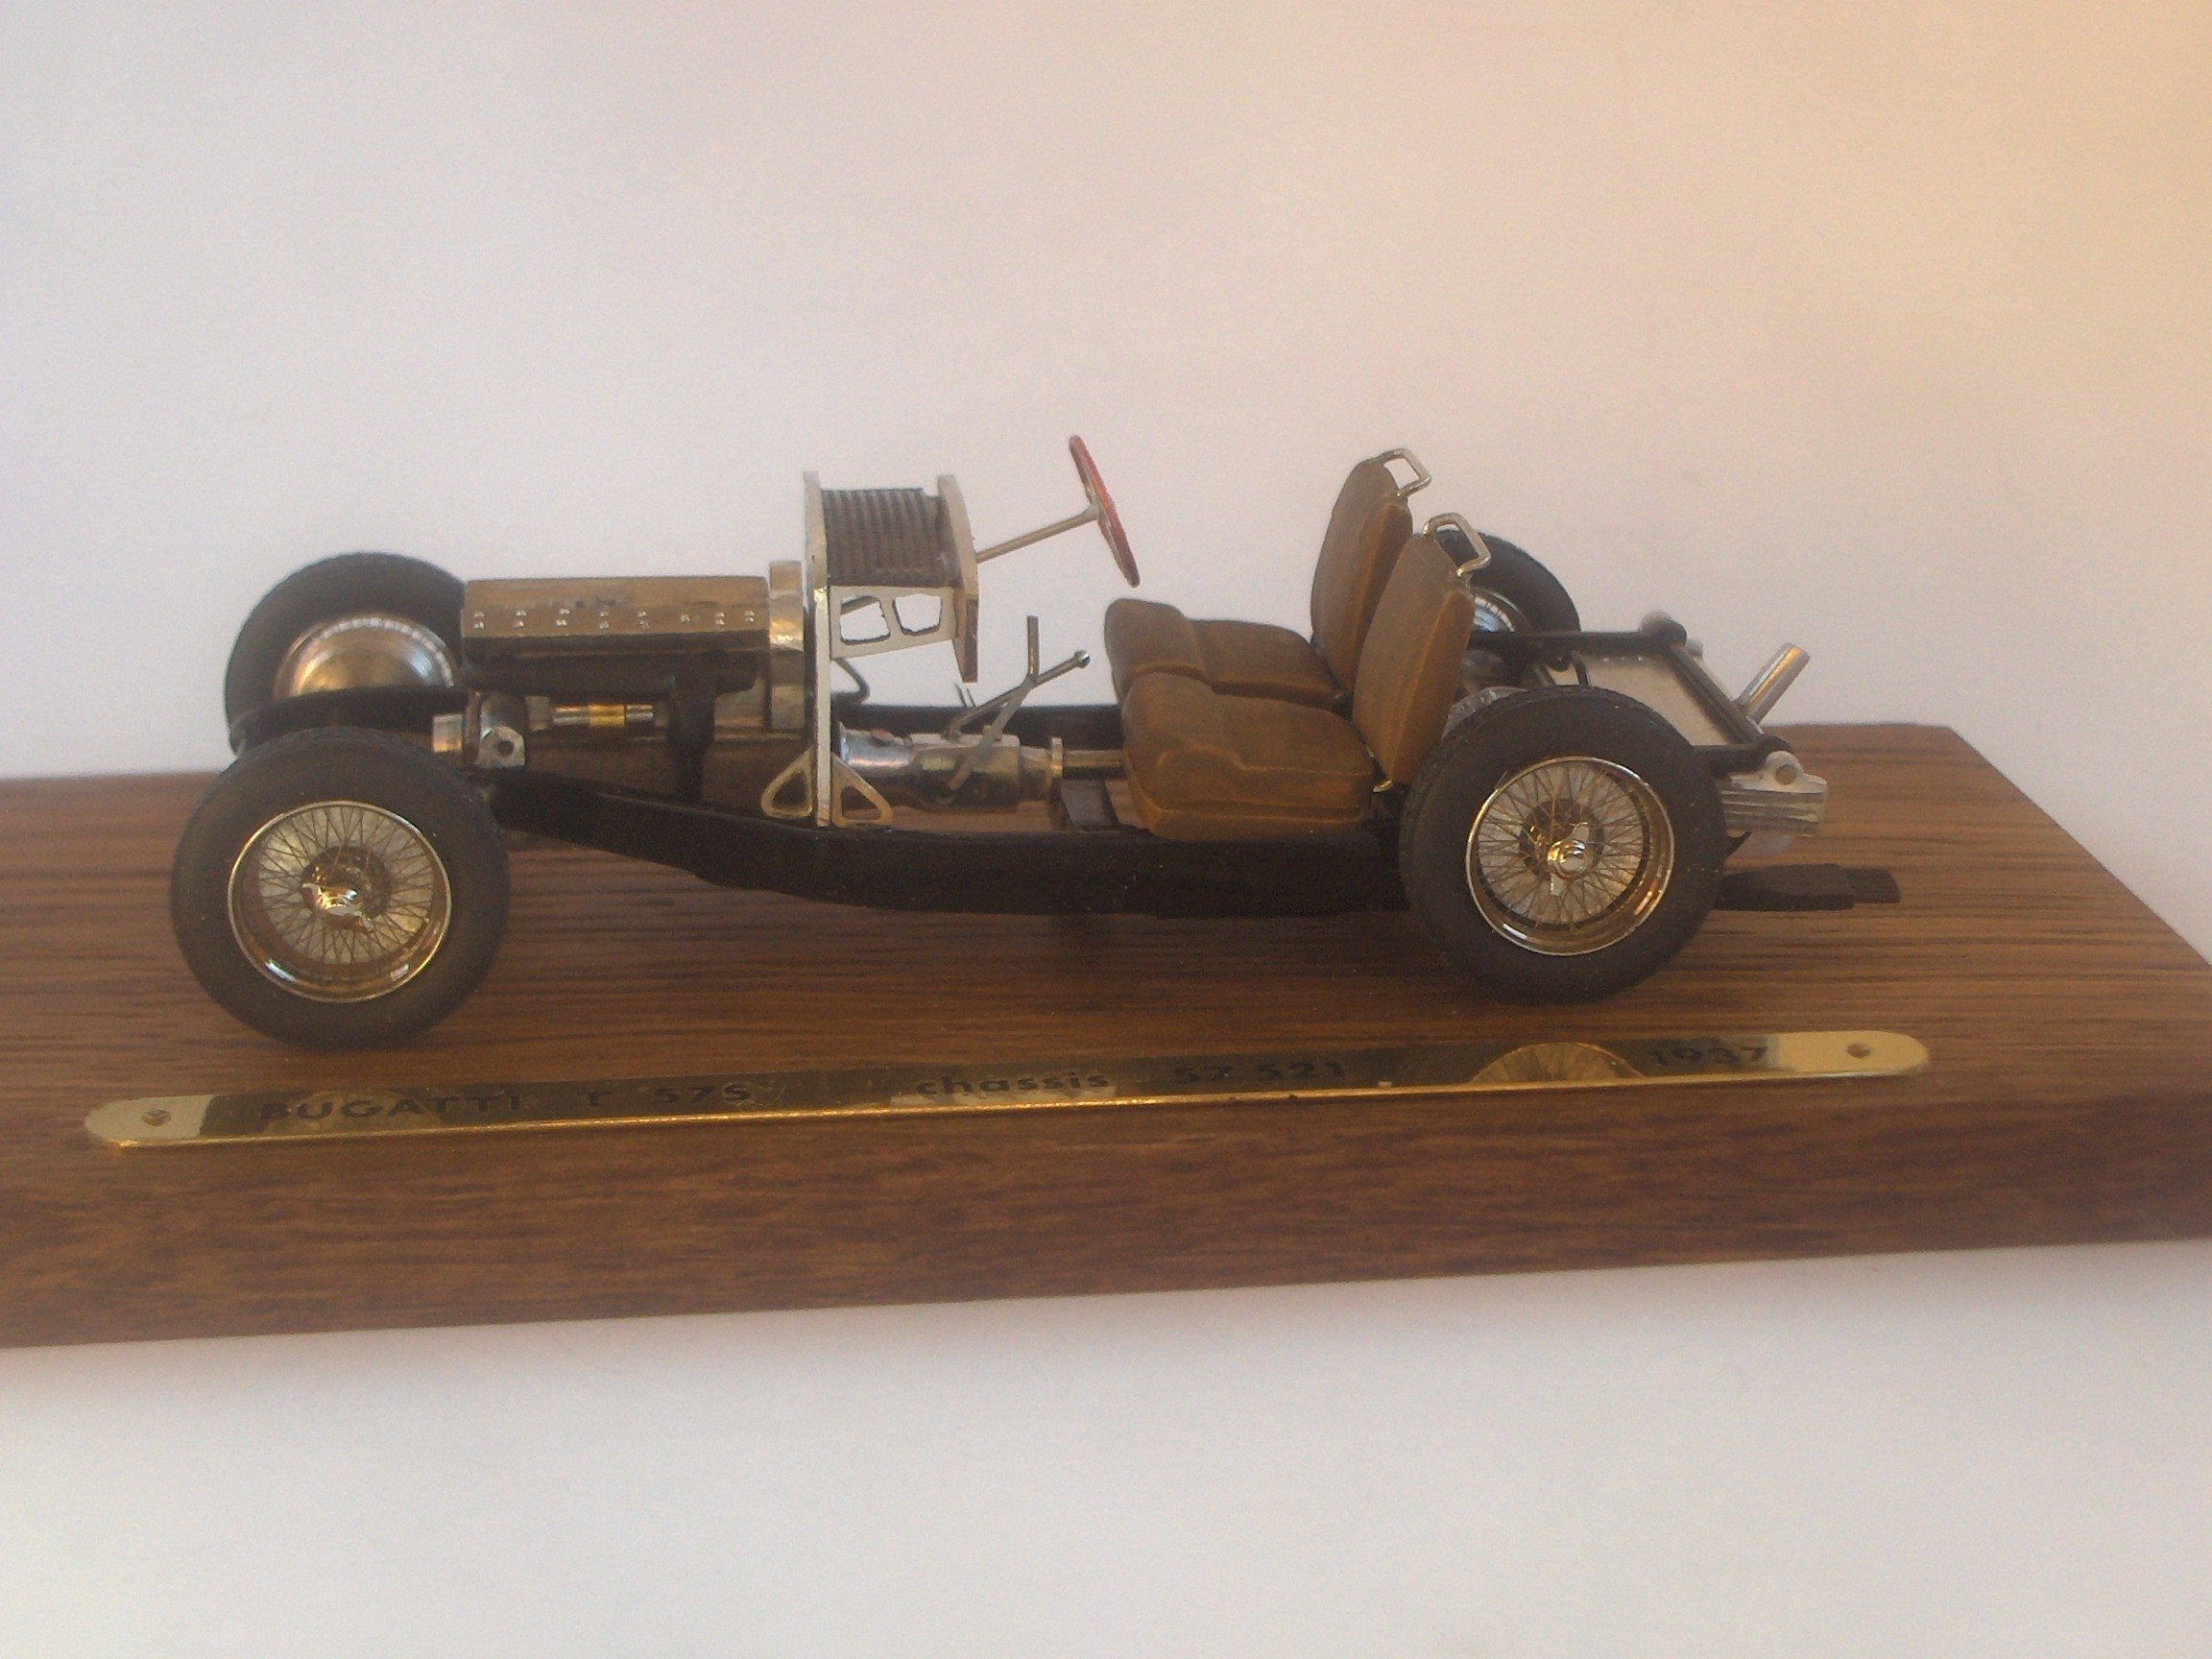 chassis 57.521